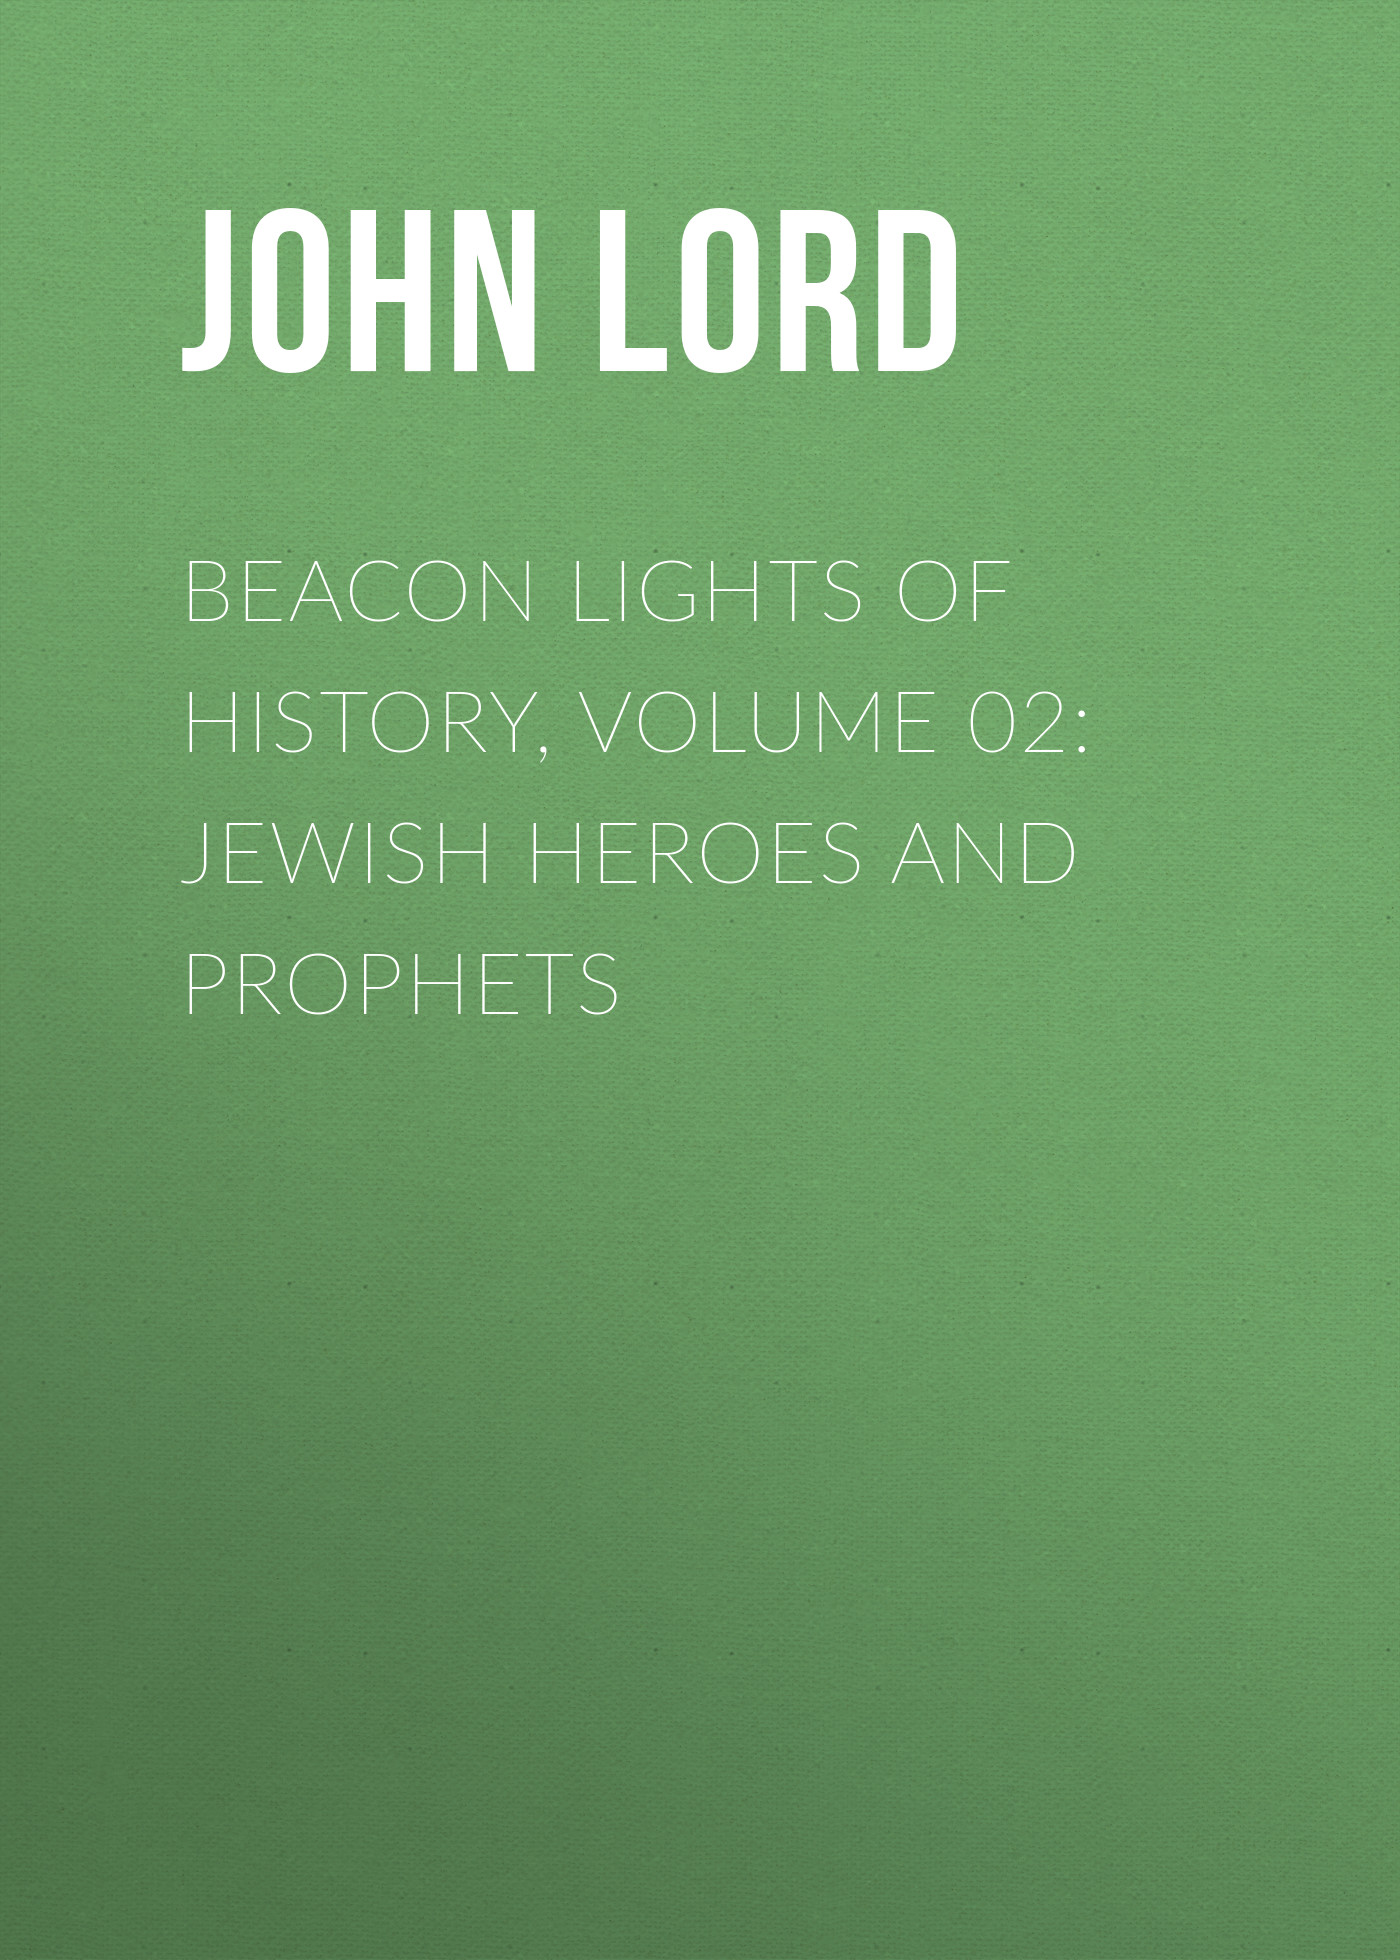 John Lord Beacon Lights of History, Volume 02: Jewish Heroes and Prophets history heroes neil armstrong